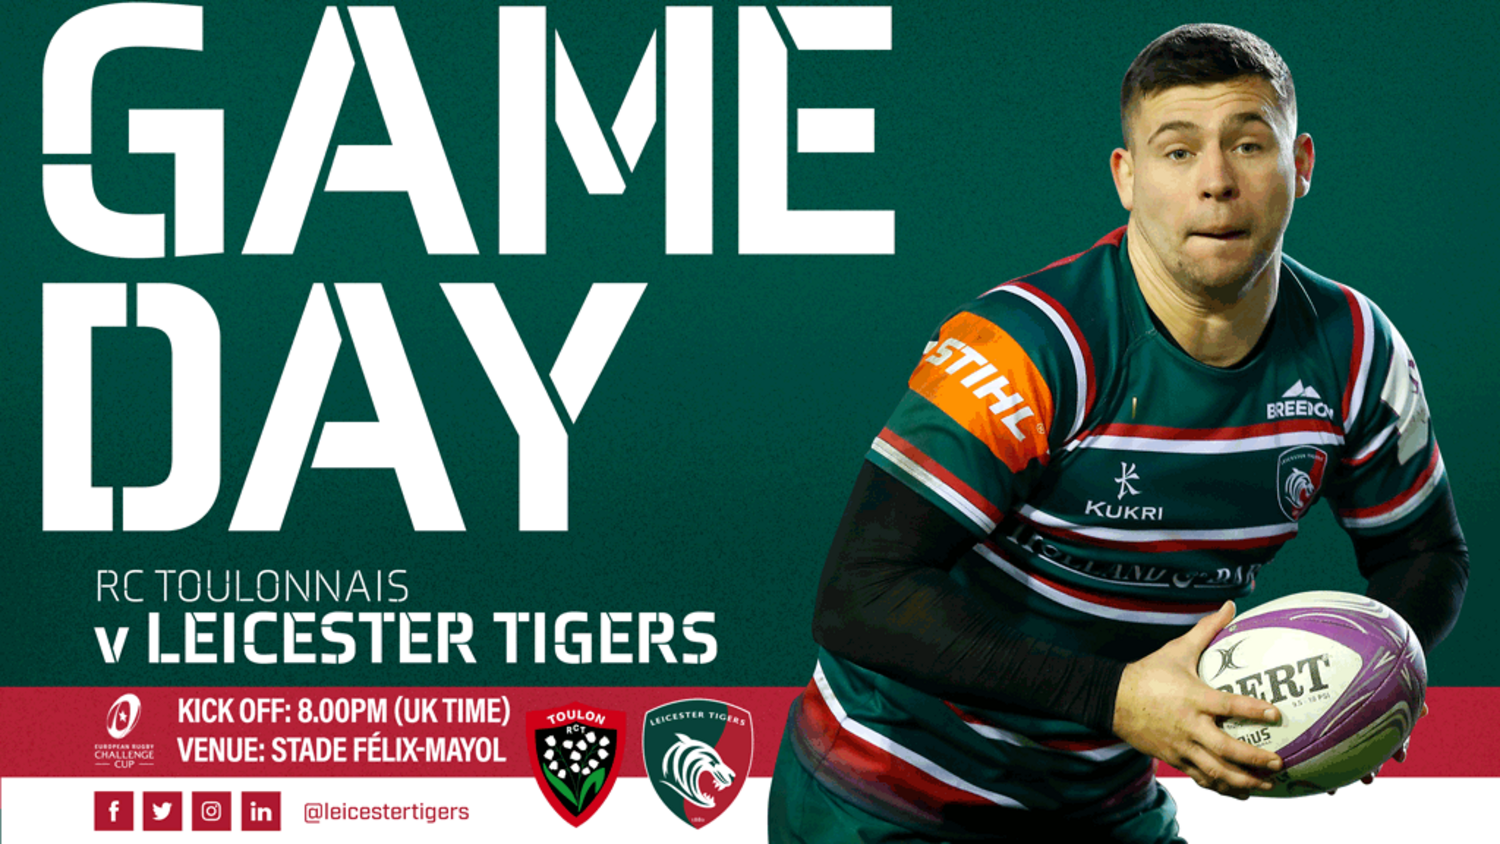 matchday live toulon v tigers 260920 game day.png